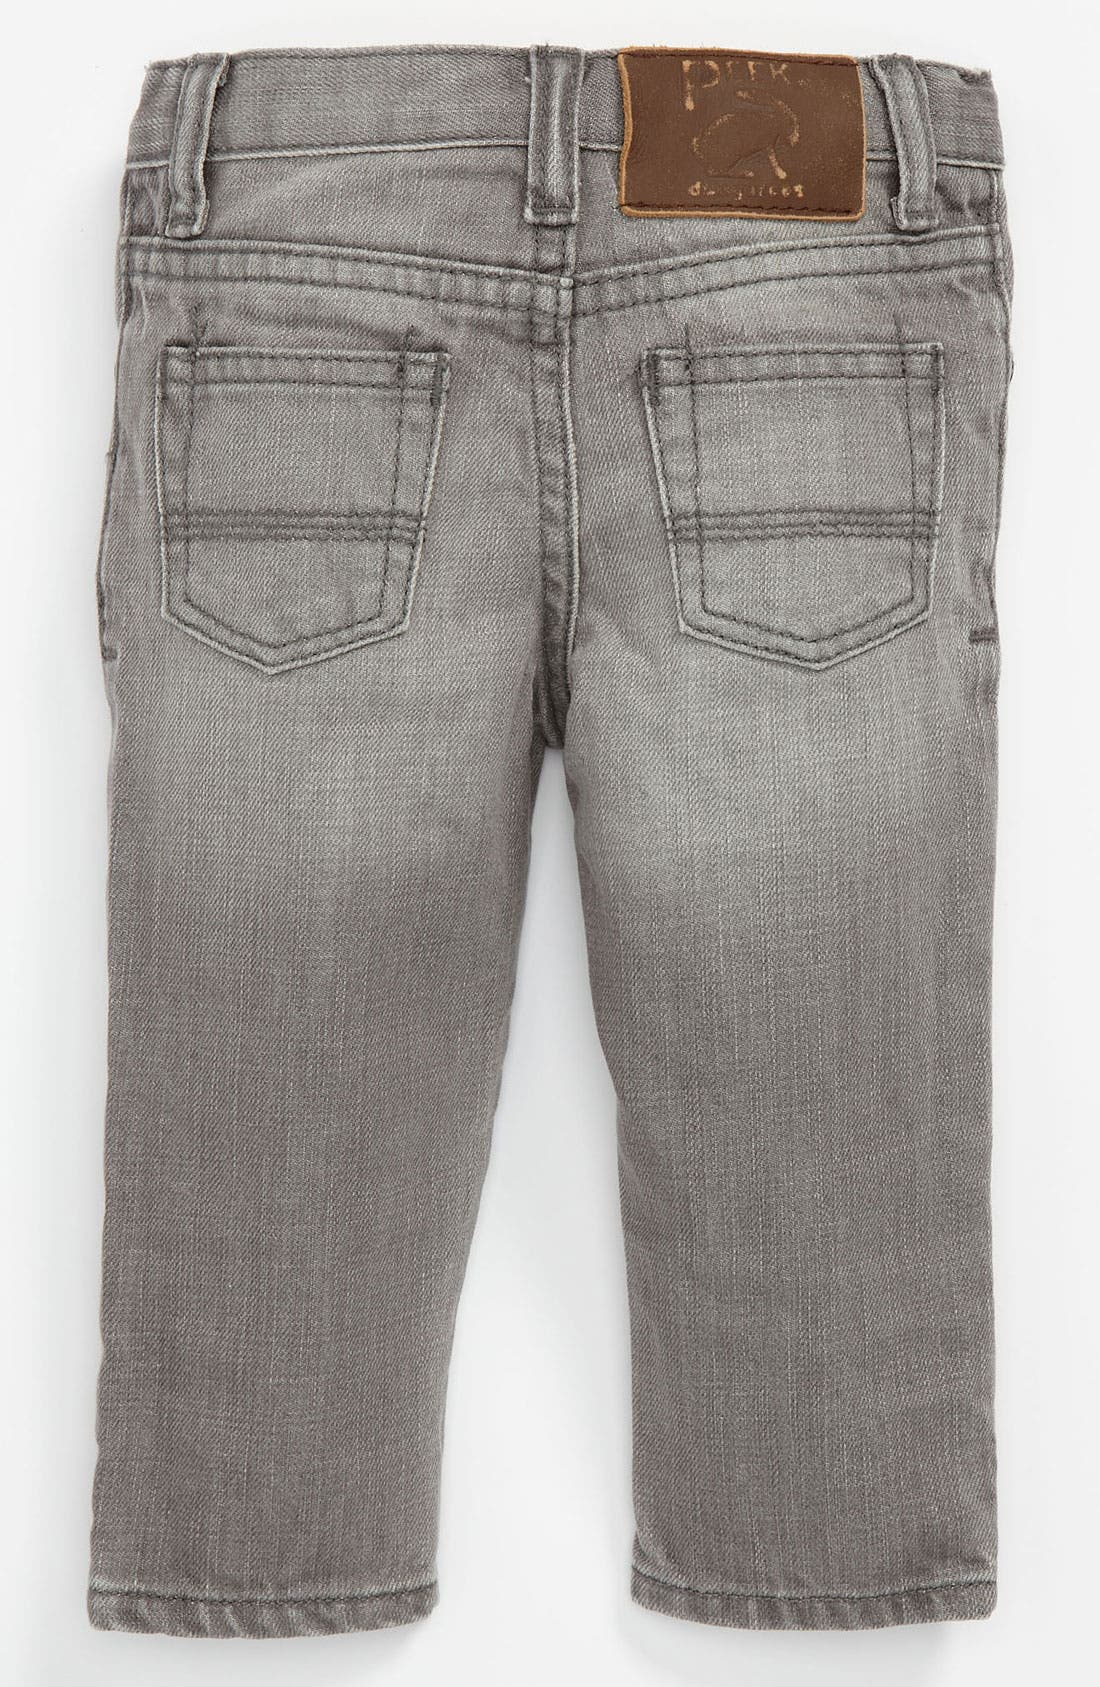 Alternate Image 1 Selected - Peek 'Slouch' Jeans (Baby)